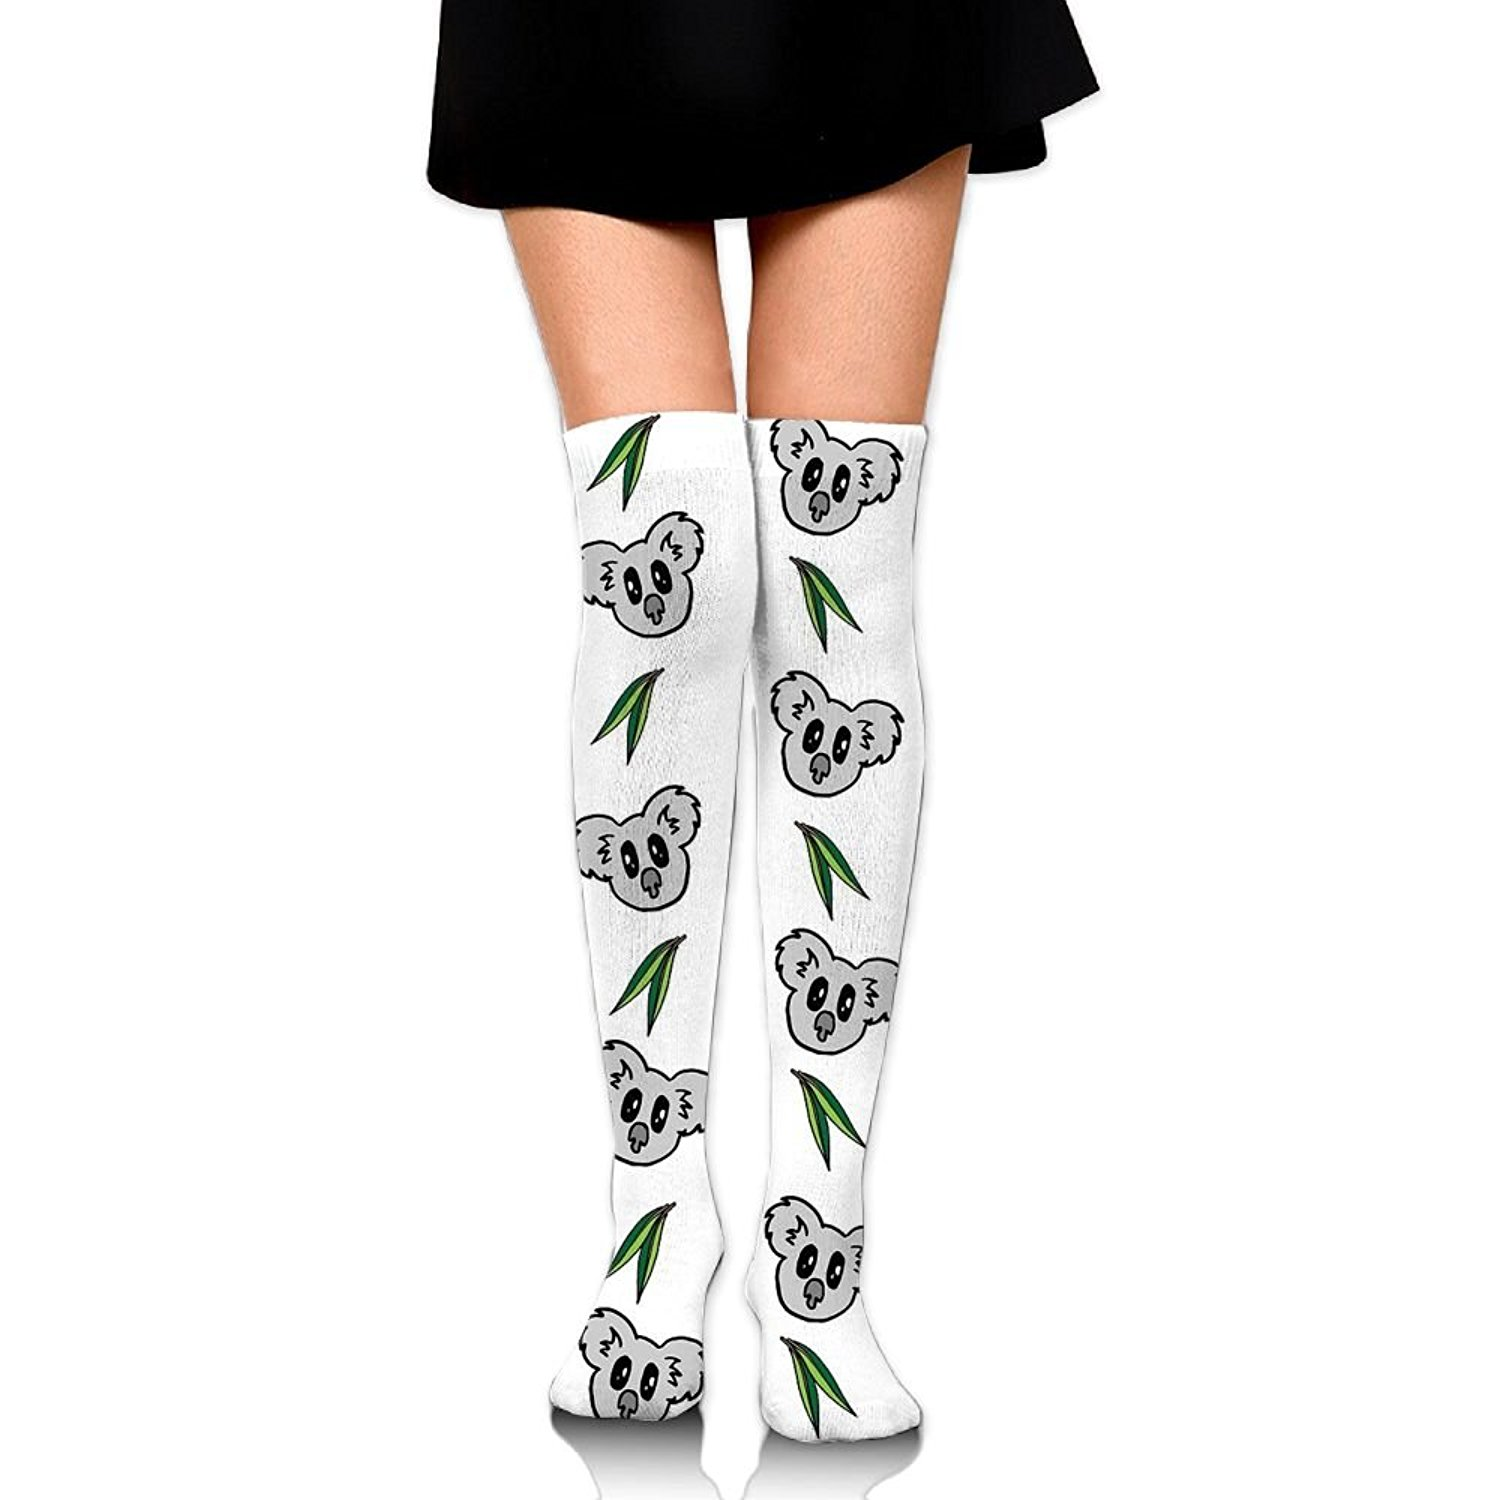 Zaqxsw Koala Women Retro Thigh High Socks Girls Socks For Ladies